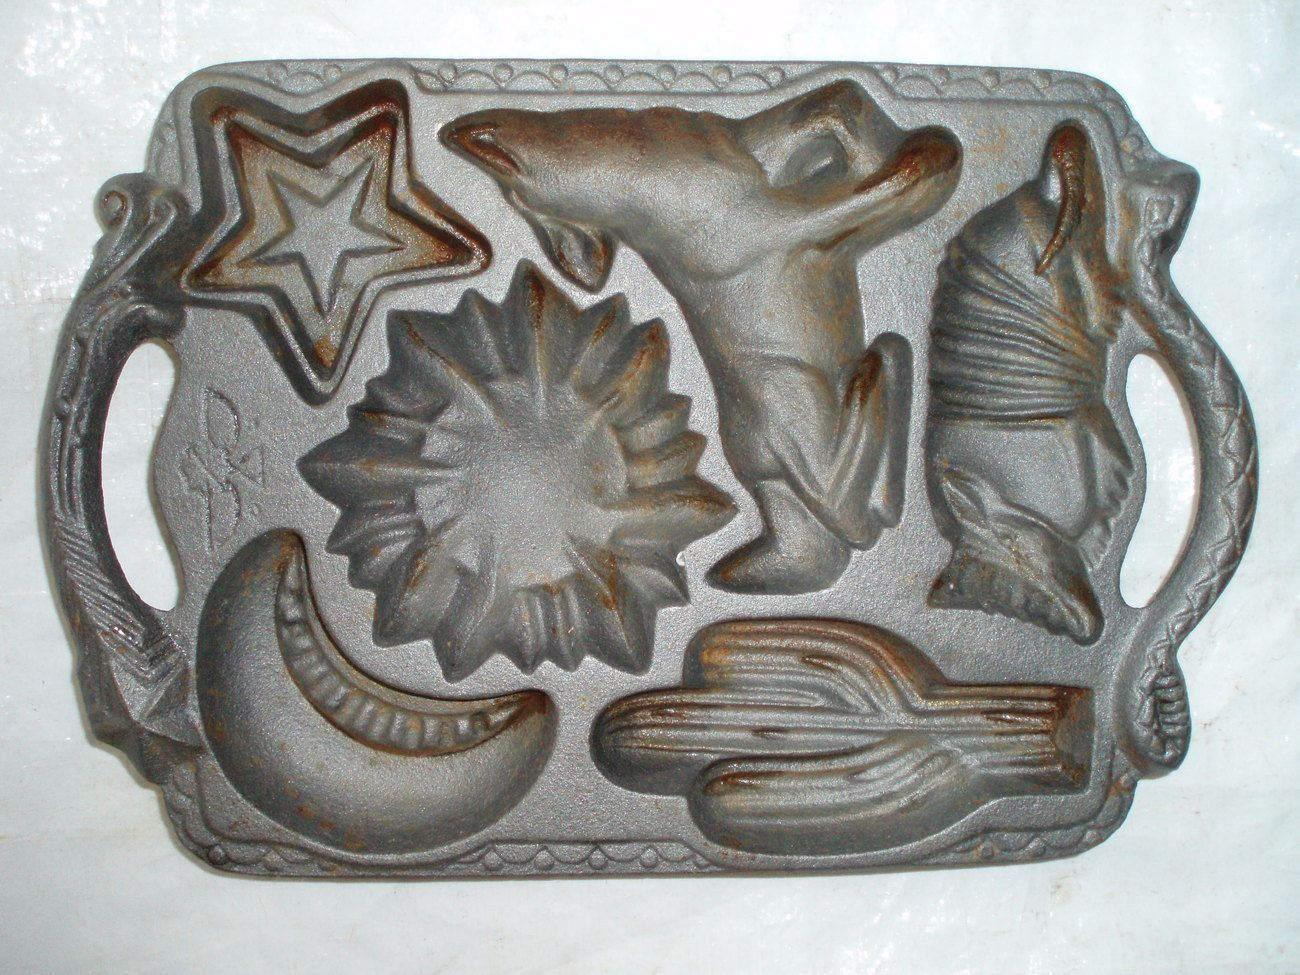 Bonanza :: Find everything but the ordinary   Griswold cast iron, Wagner cast  iron, Cast iron cooking